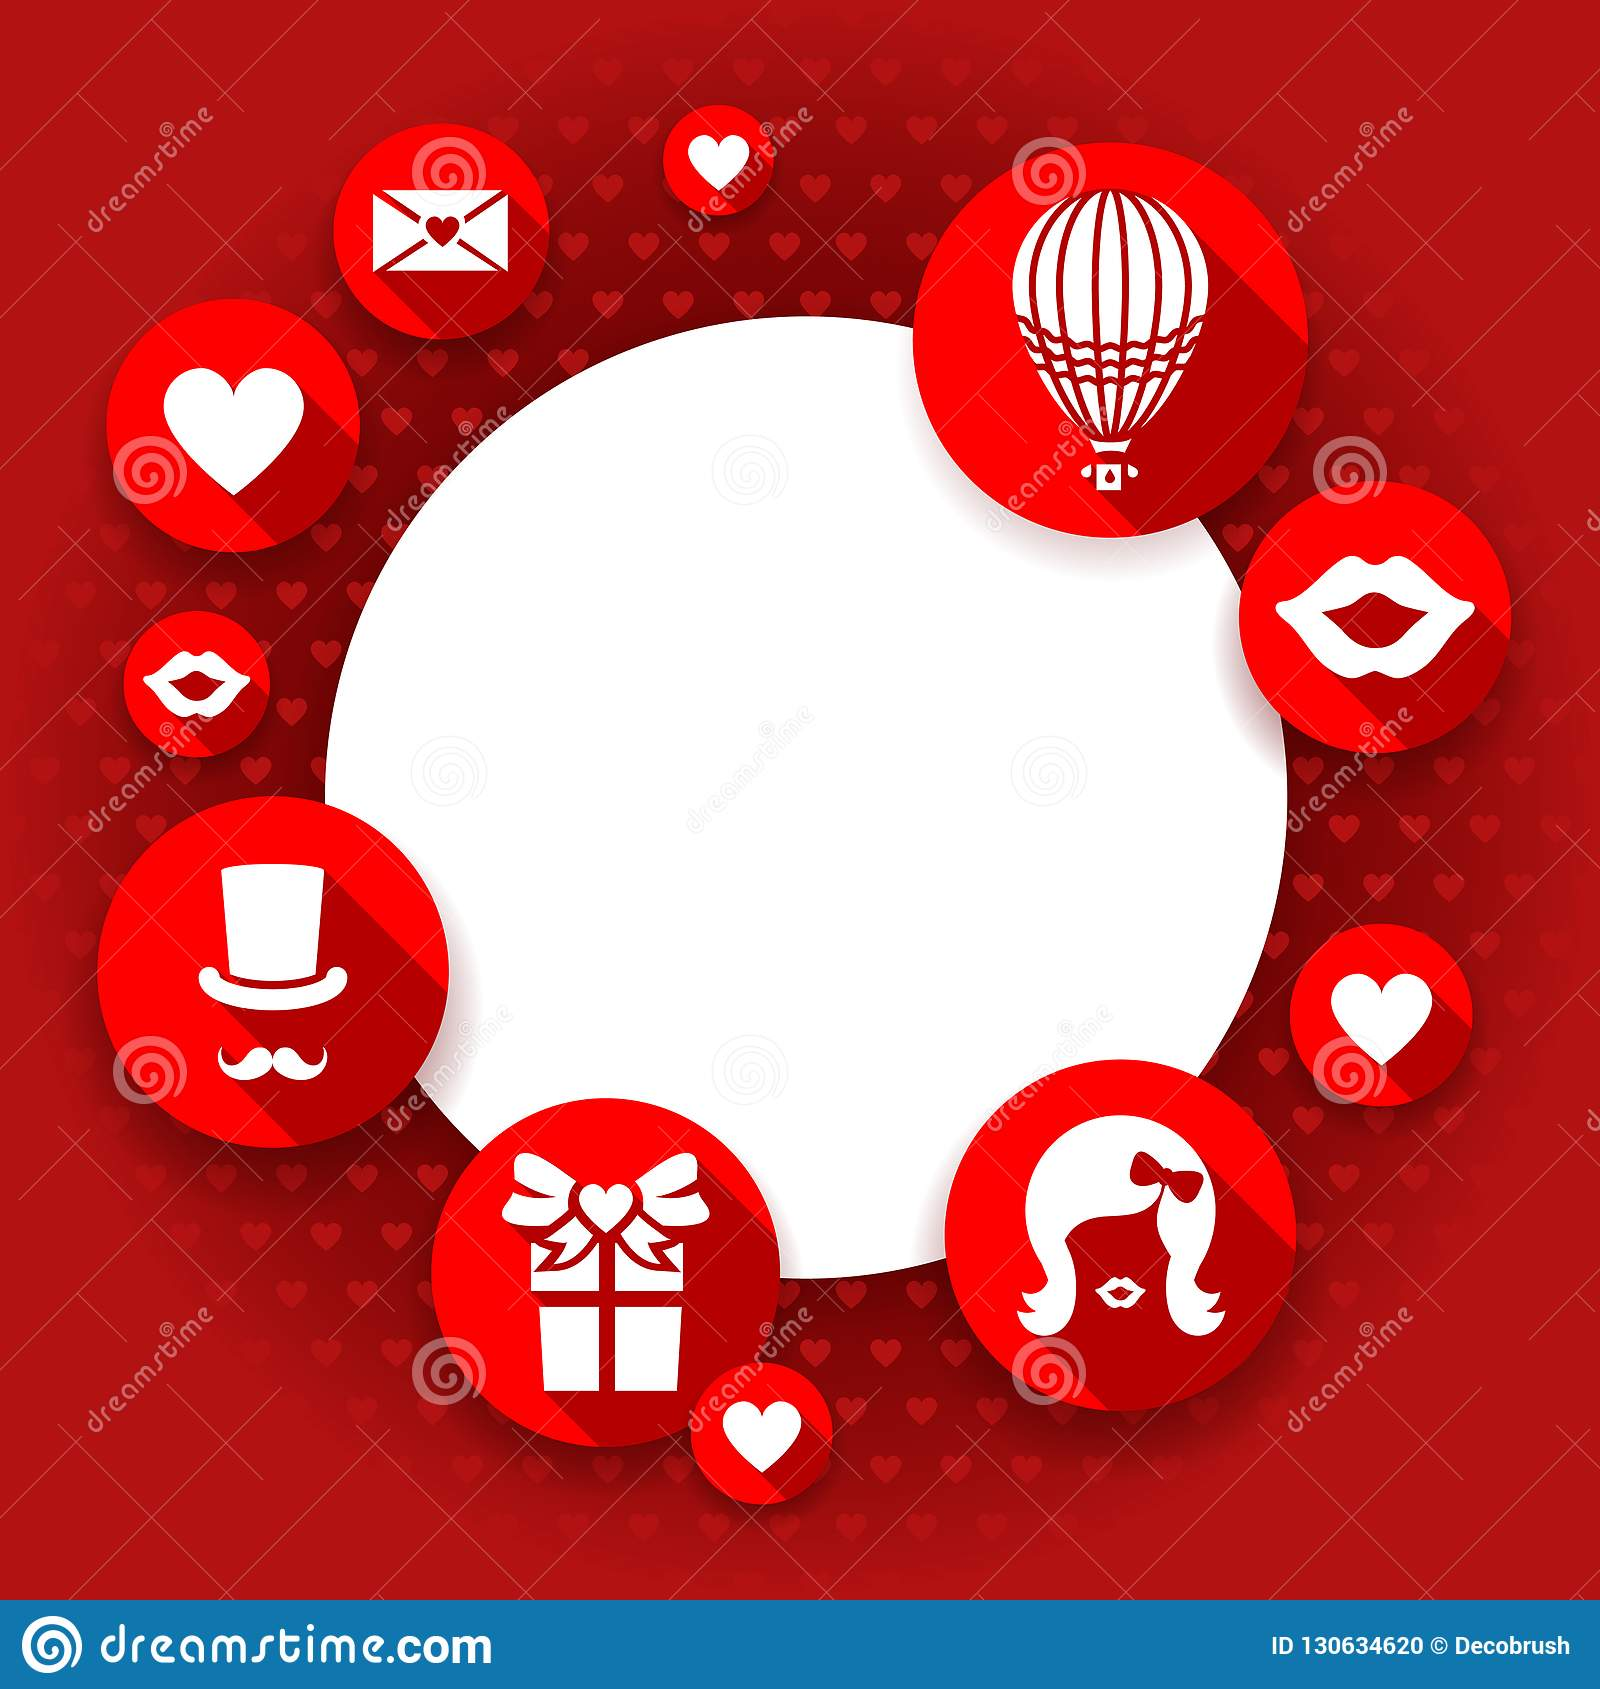 Valentines Day Card Love Red Background Flat Icons And Copy Space